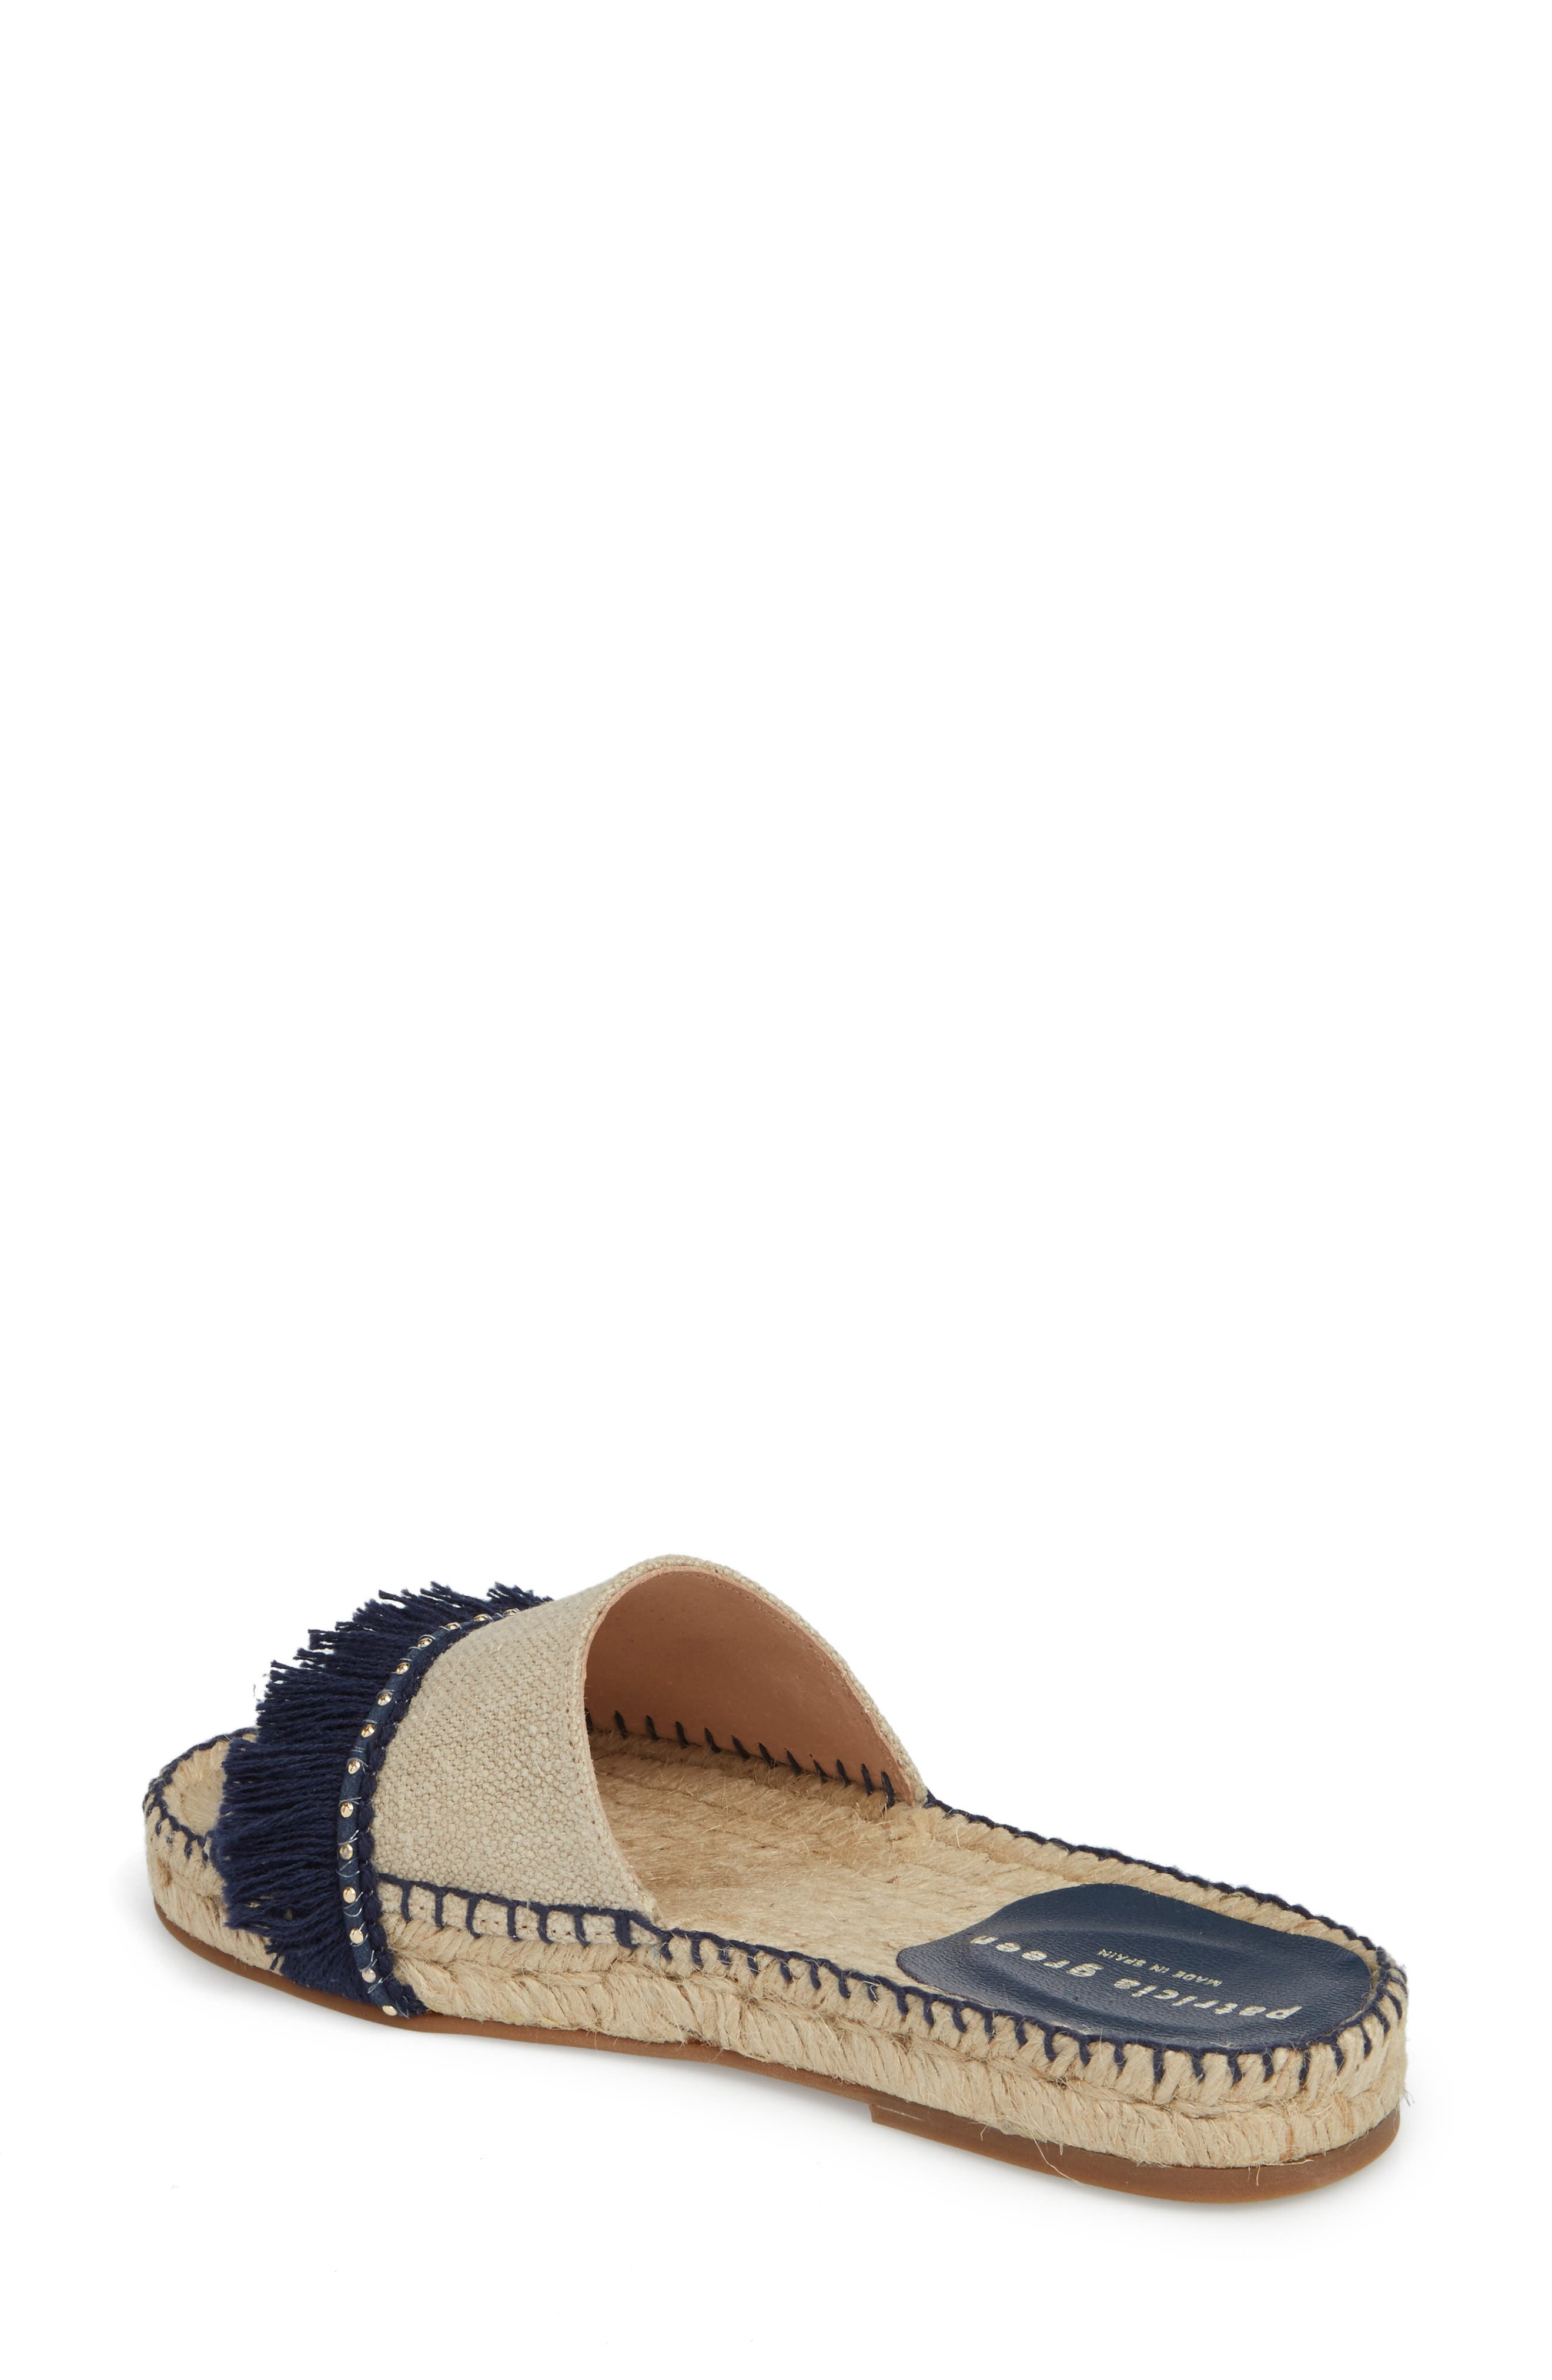 Bahama Espadrille Sandal,                             Alternate thumbnail 2, color,                             Navy Leather